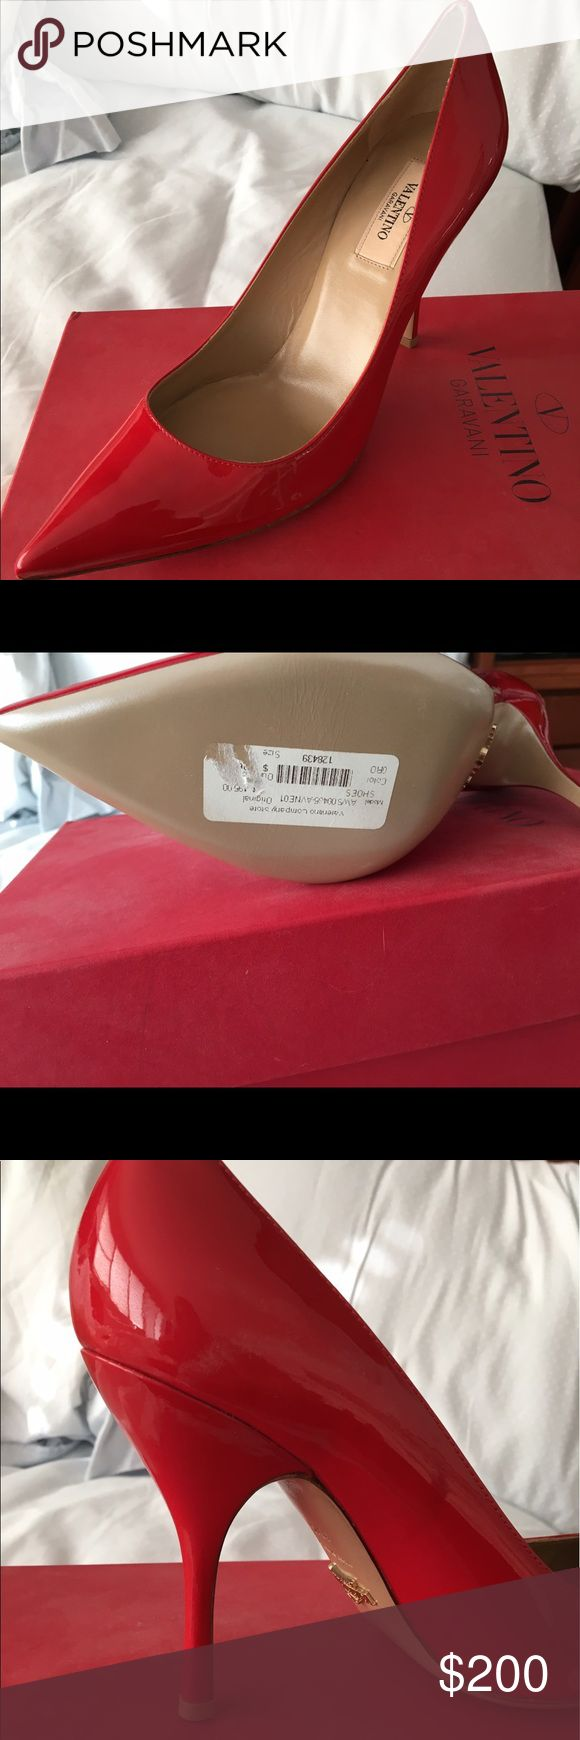 Brand new in box Valentino red patent heel Amazing fun heels to wear with dress or jeans. Brand new never worn with box and dust bag. Runs a bit small. I wear a nine. Valentino Shoes Heels